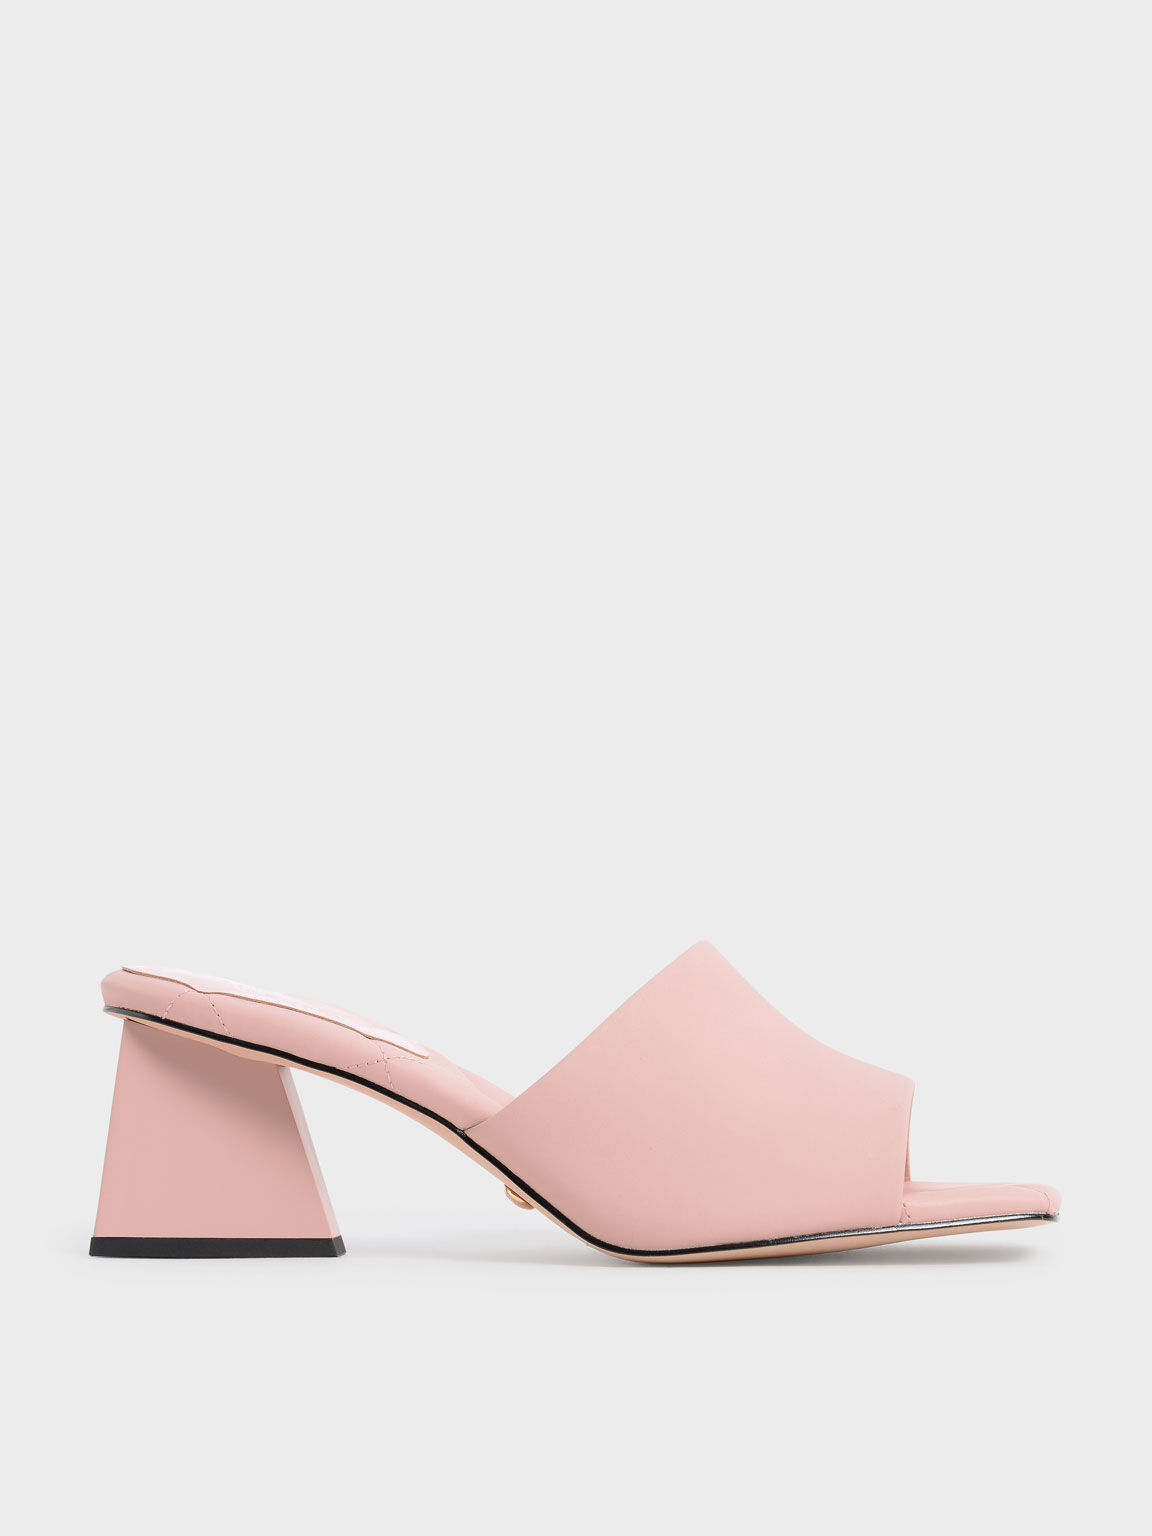 Sandal Leather Trapeze Heel Mules, Pink, hi-res